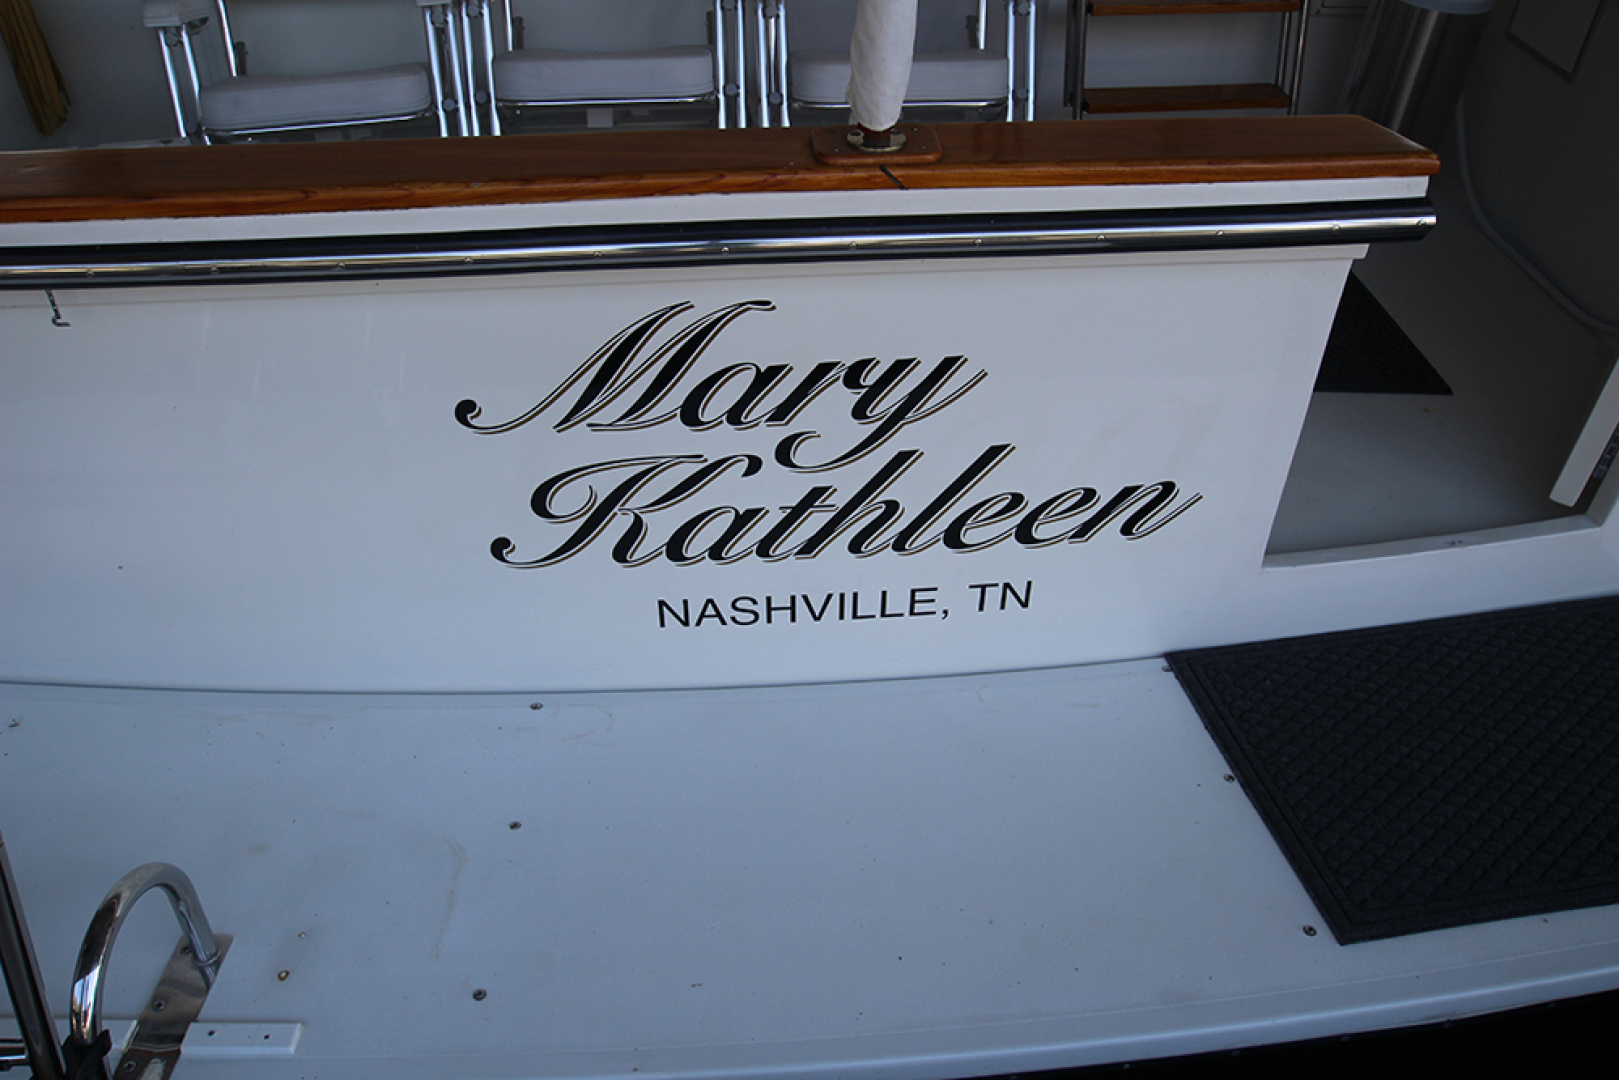 Californian-52 Cockpit Motor Yacht 1991-MARY KATHLEEN Mount Juliet-Tennessee-United States-Transom Name-1574731 | Thumbnail